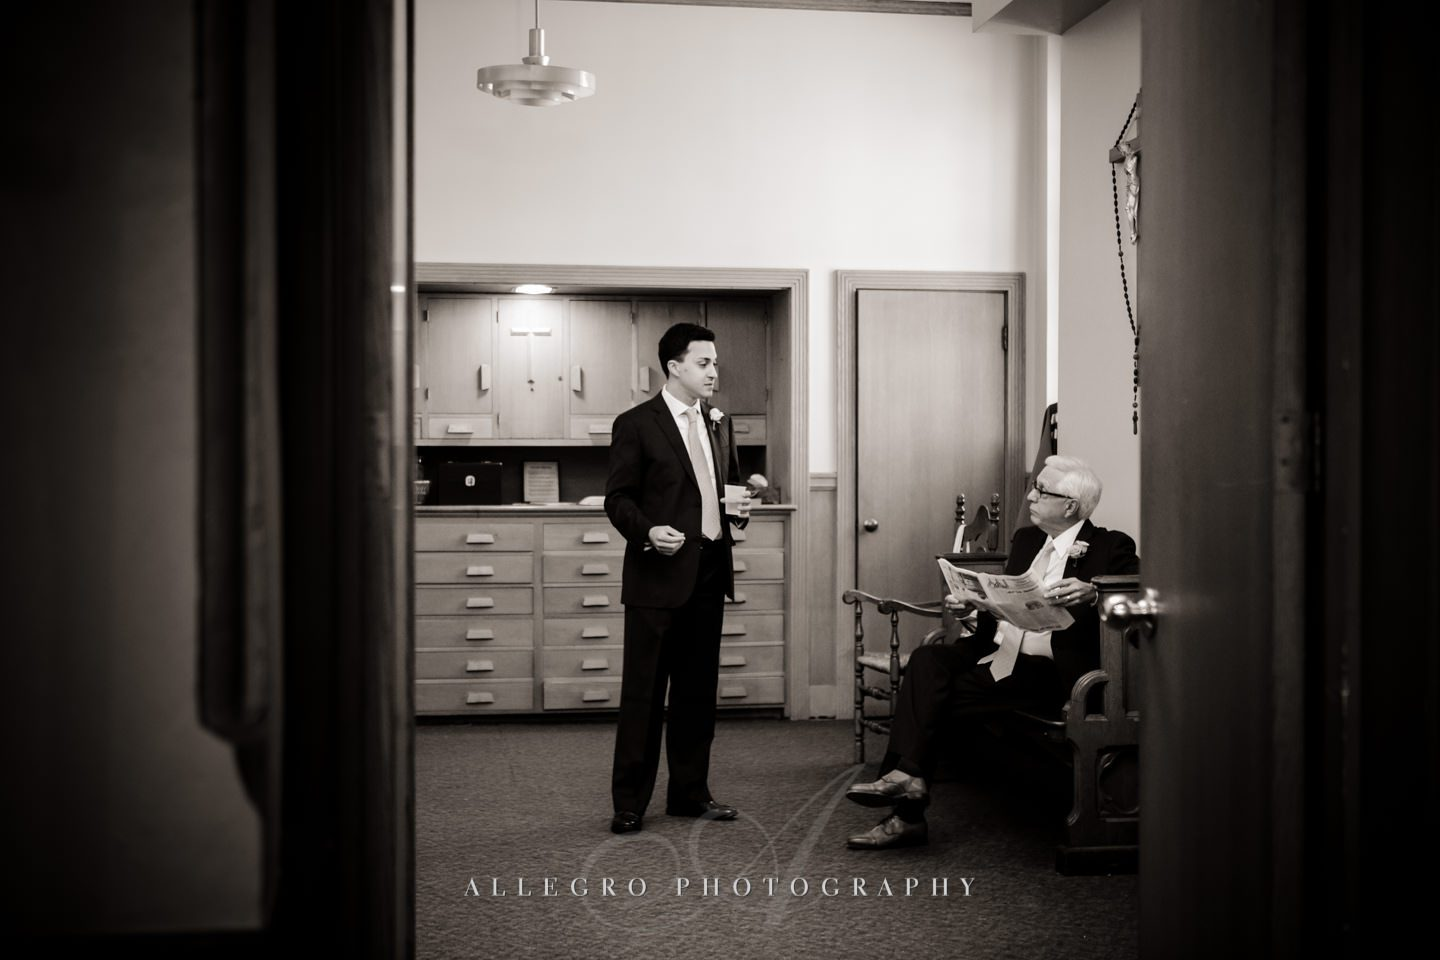 groom waiting for ceremony with his father - photo by Allegro Photography